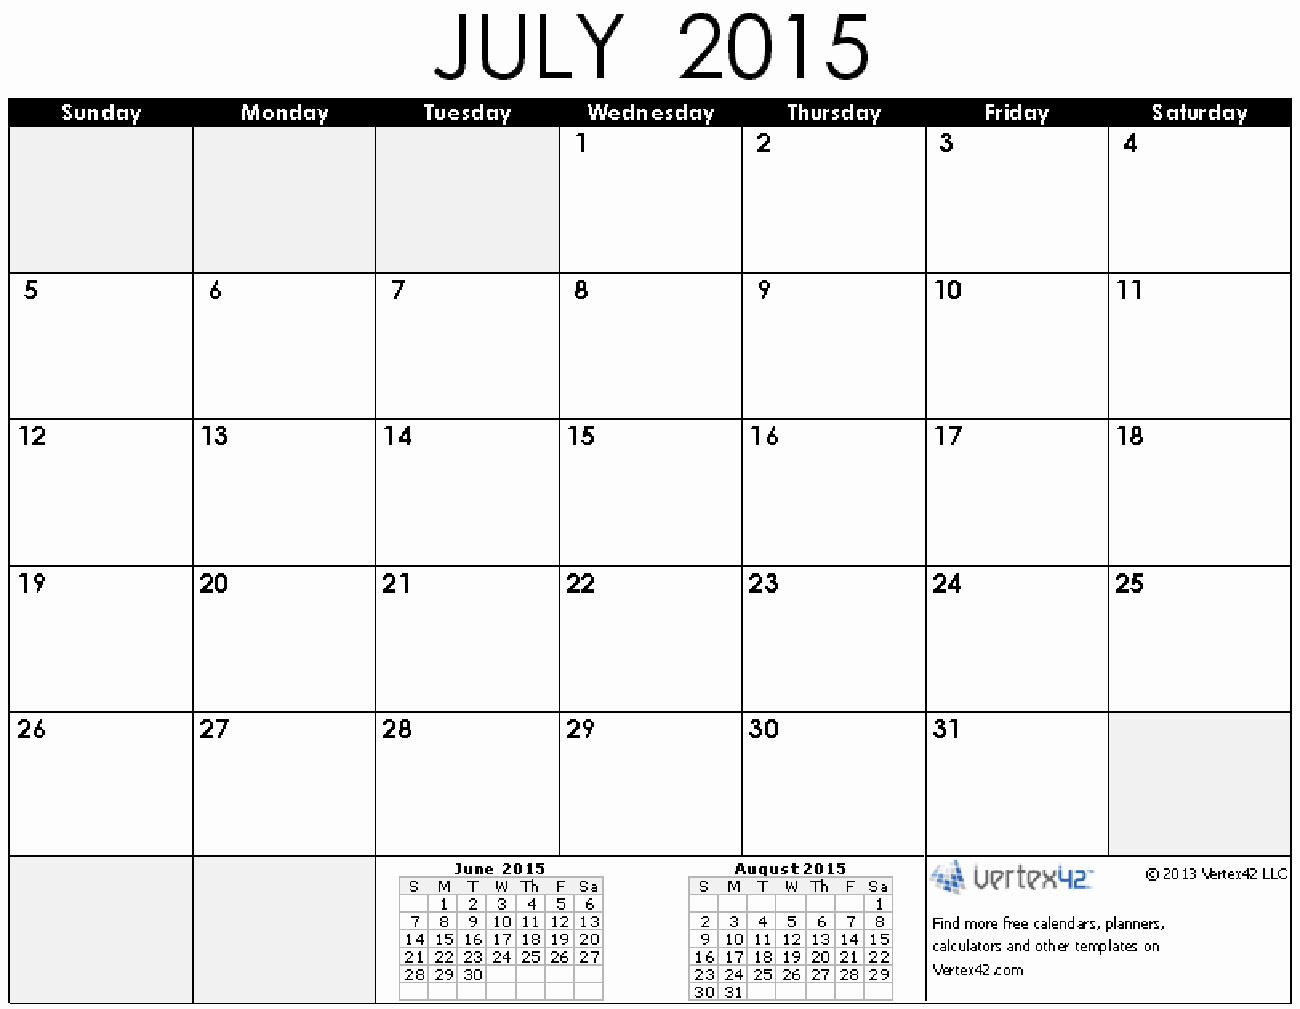 Free Monthly Calendar Templates 2015 Unique 8 Best Of July 2015 Printable Calendar by Month